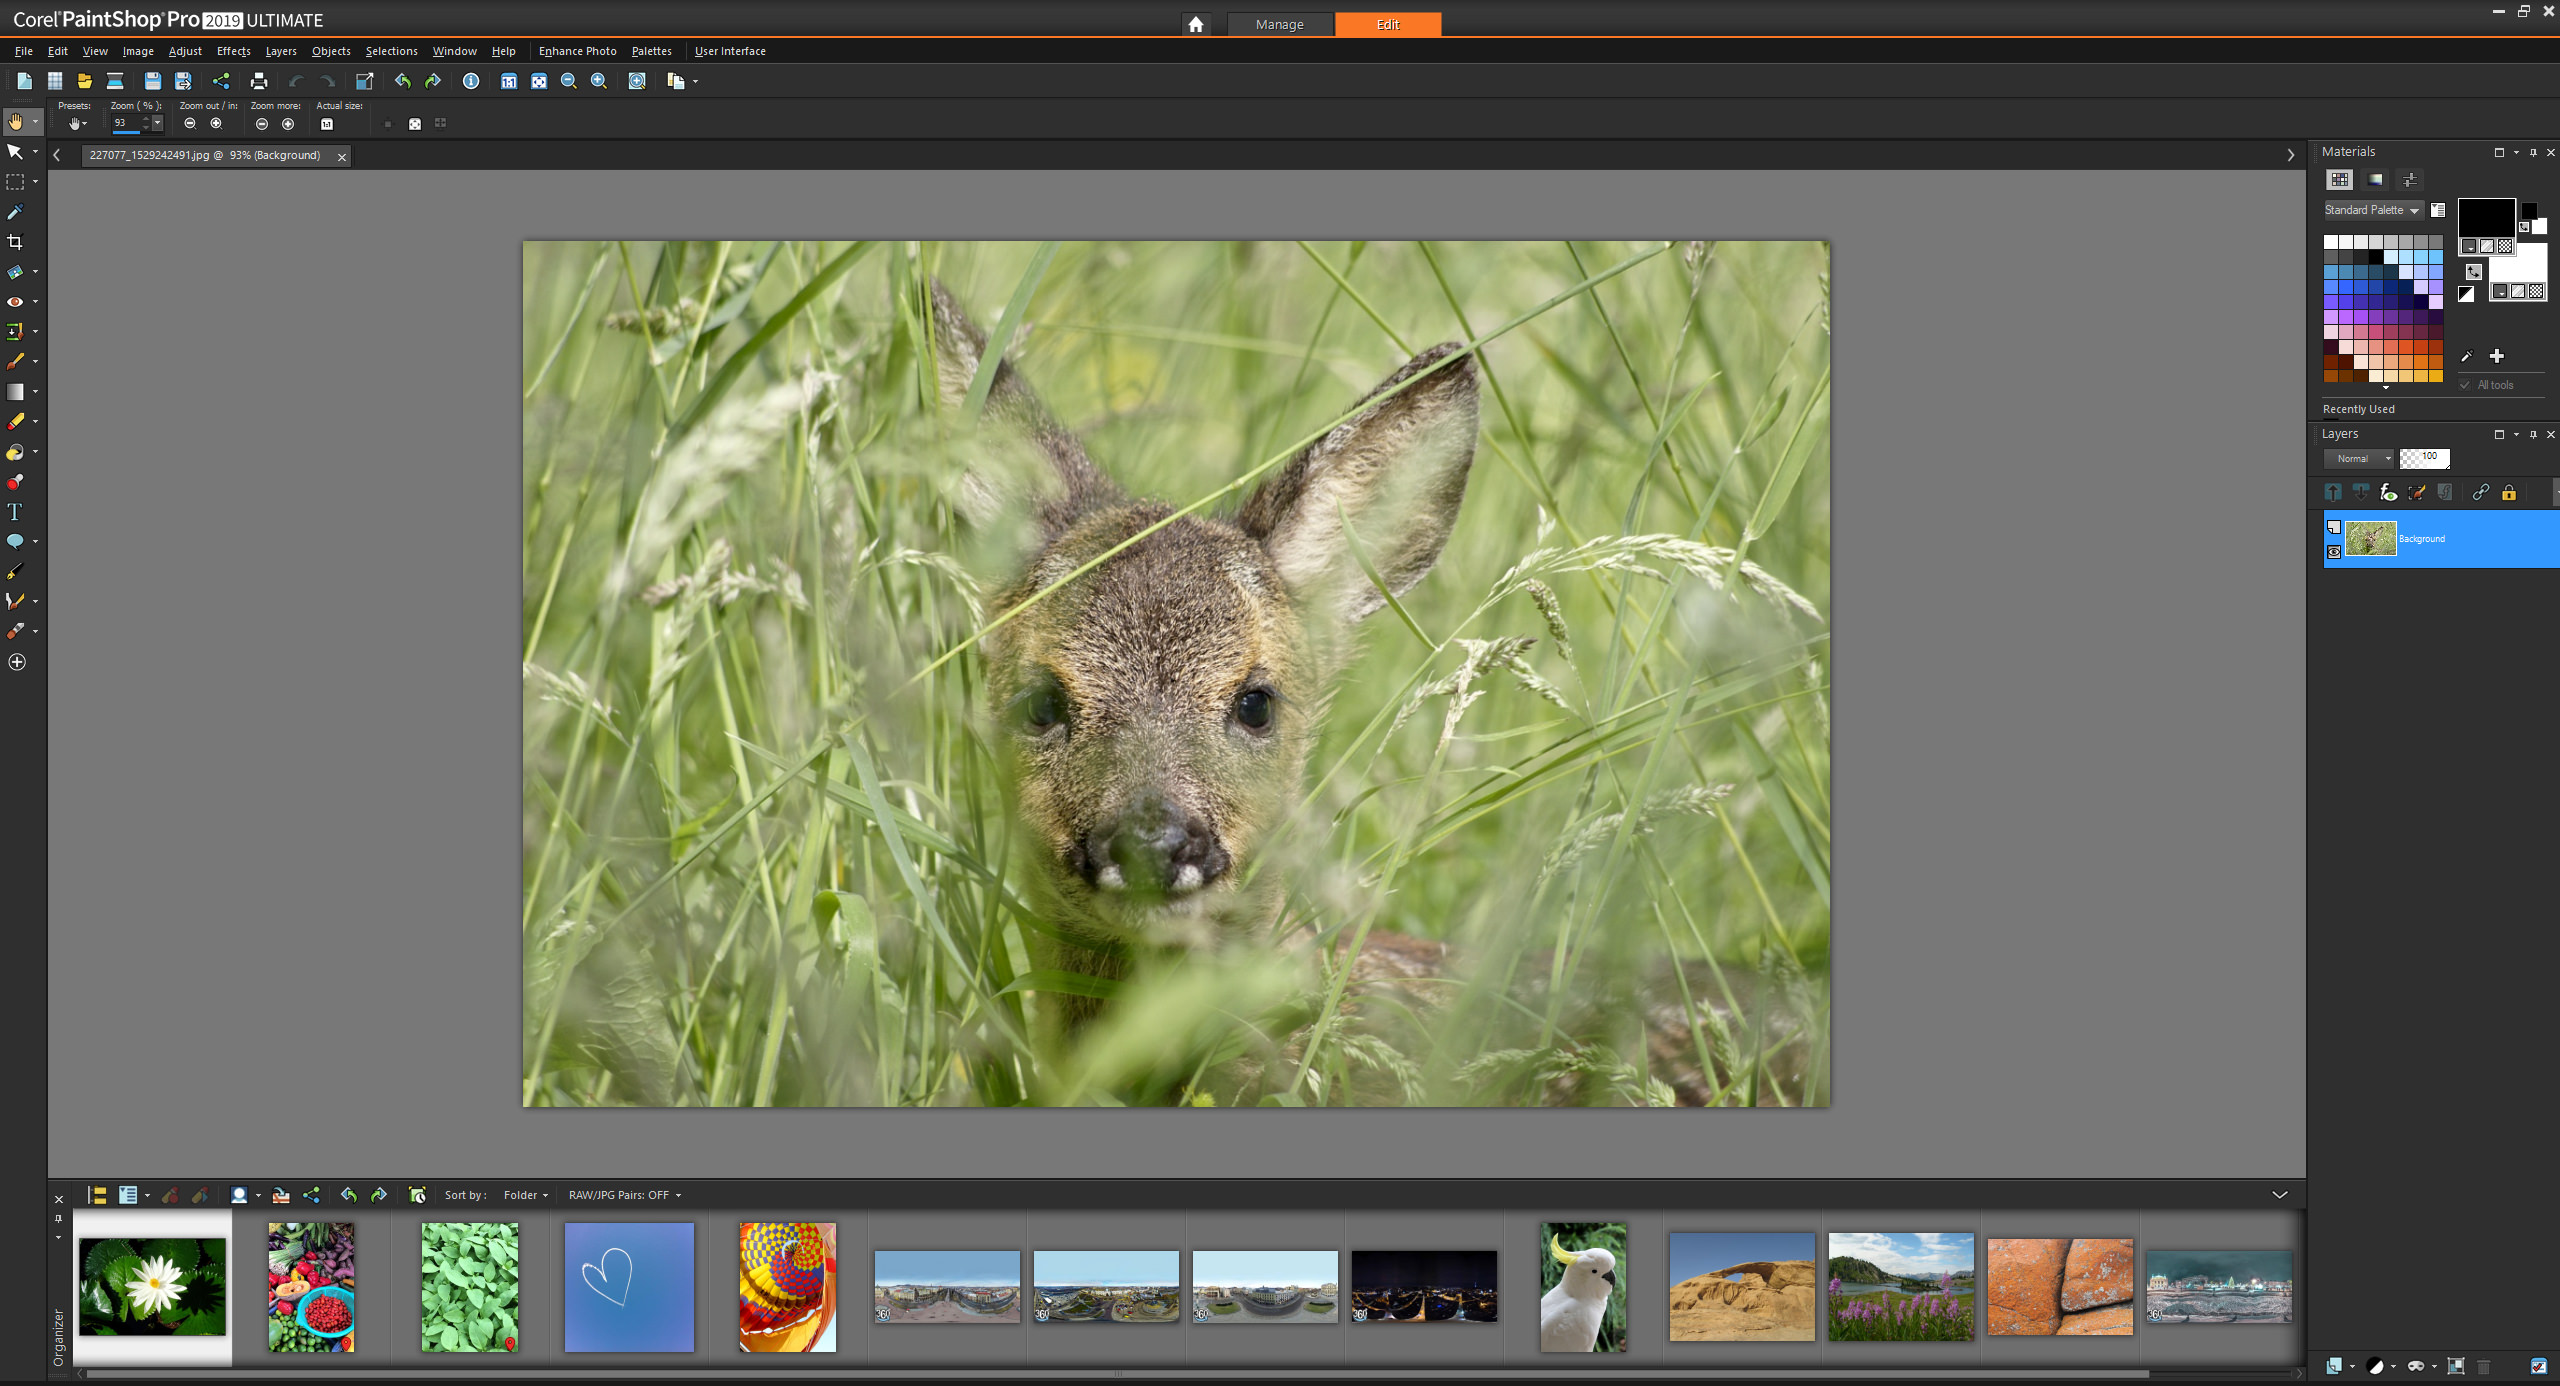 Corel Paintshop Pro 2019 Ultimate 21.0.0.119 incl Keygen a part of the PaintShopPro family of digital imaging and photography products, is the most complete, easy-to-use software for creating ...